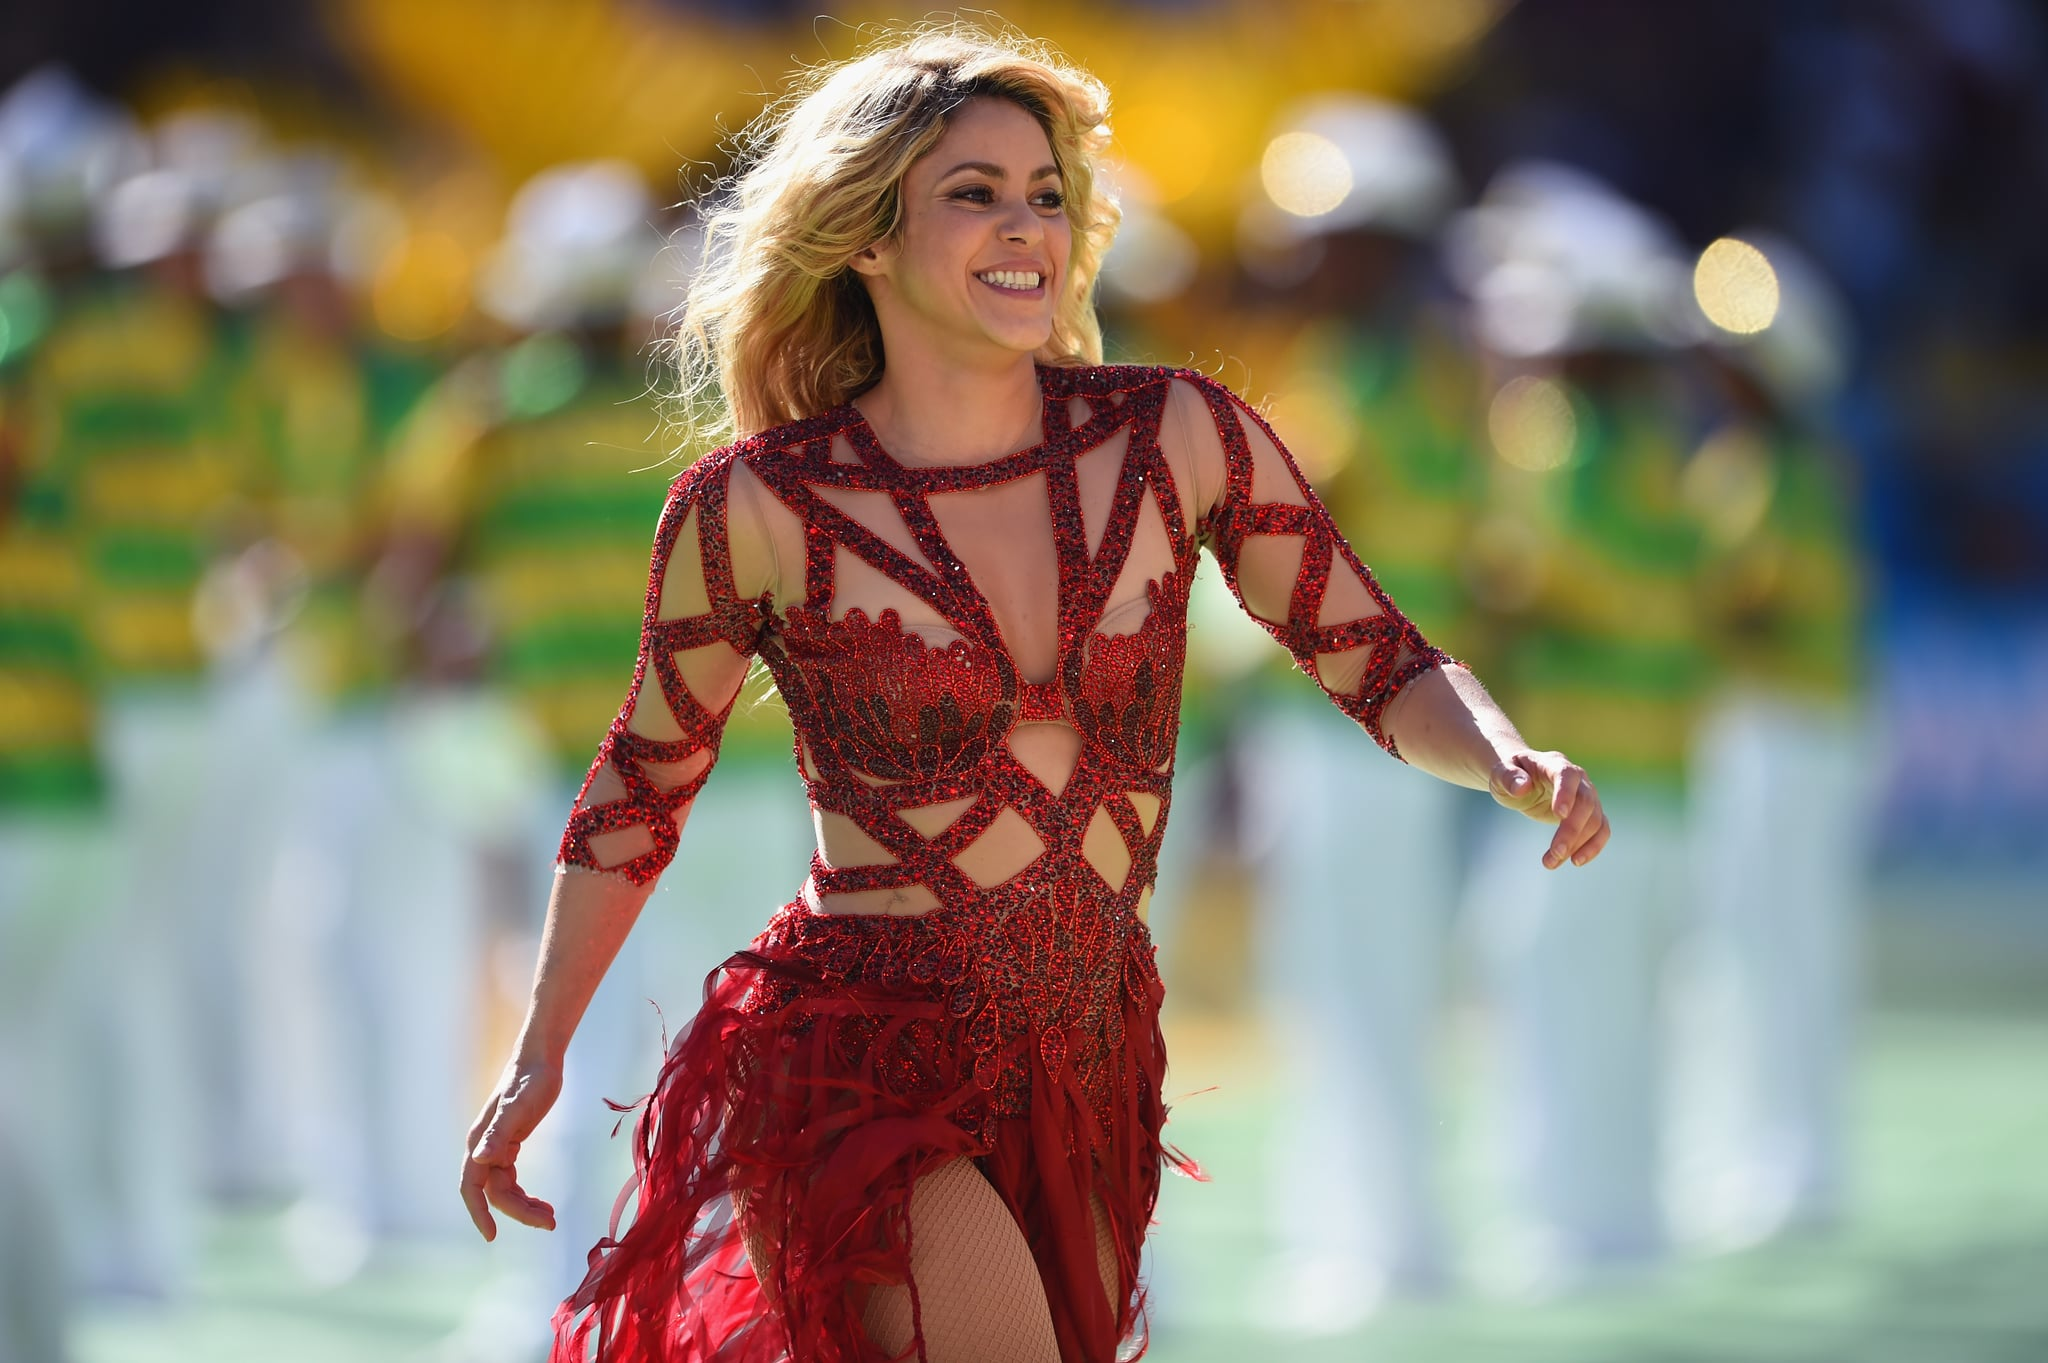 RIO DE JANEIRO, BRAZIL - JULY 13:  Singer Shakira performs during the closing ceremony prior to the 2014 FIFA World Cup Brazil Final match between Germany and Argentina at Maracana on July 13, 2014 in Rio de Janeiro, Brazil.  (Photo by Matthias Hangst/Getty Images)